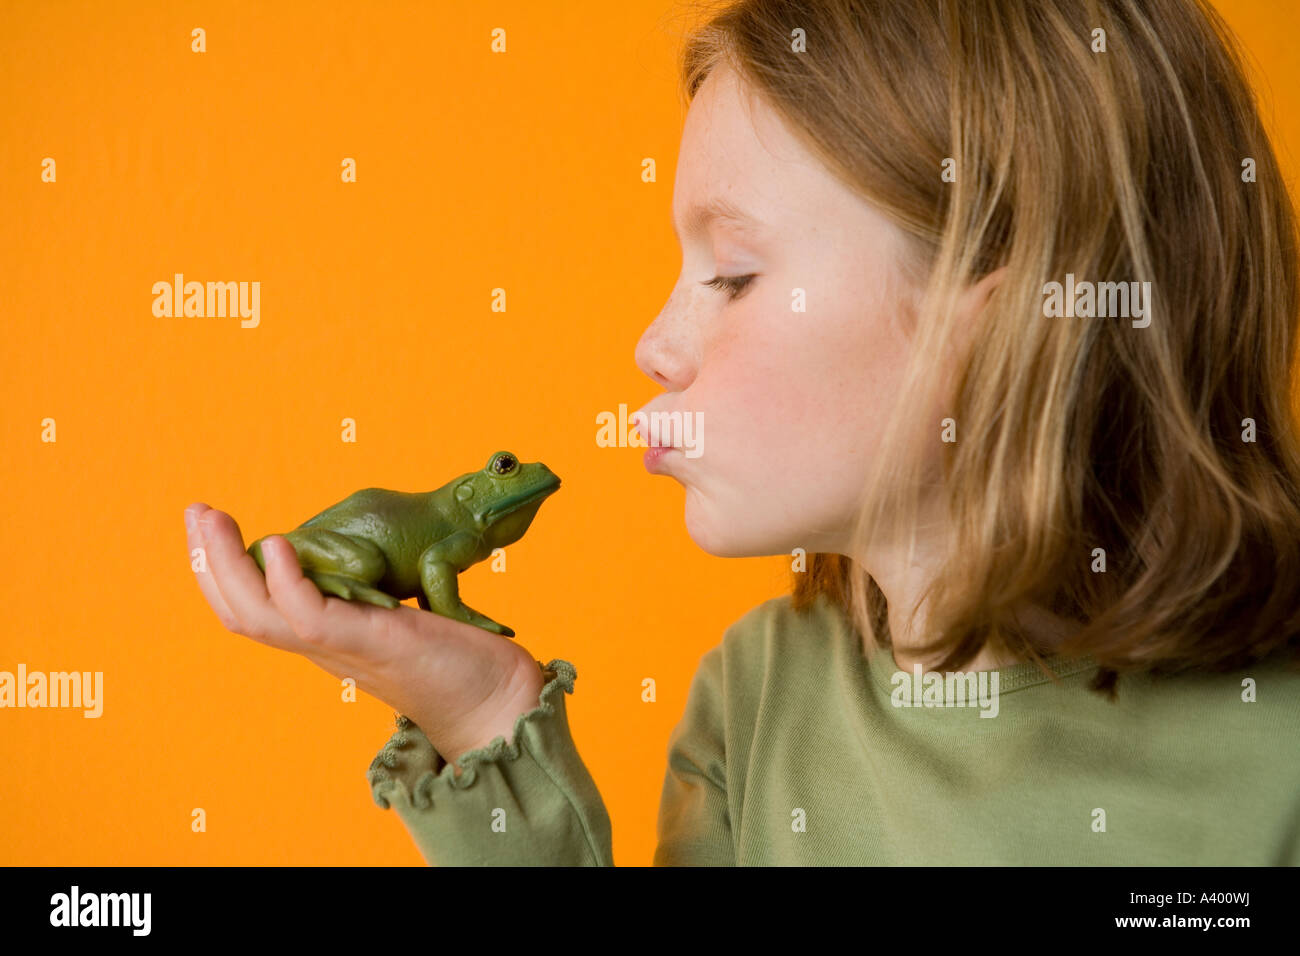 Girl Girl Kissing Frog Stock Photos Girl Frogsing Frog Stock Images - Alamy-5379